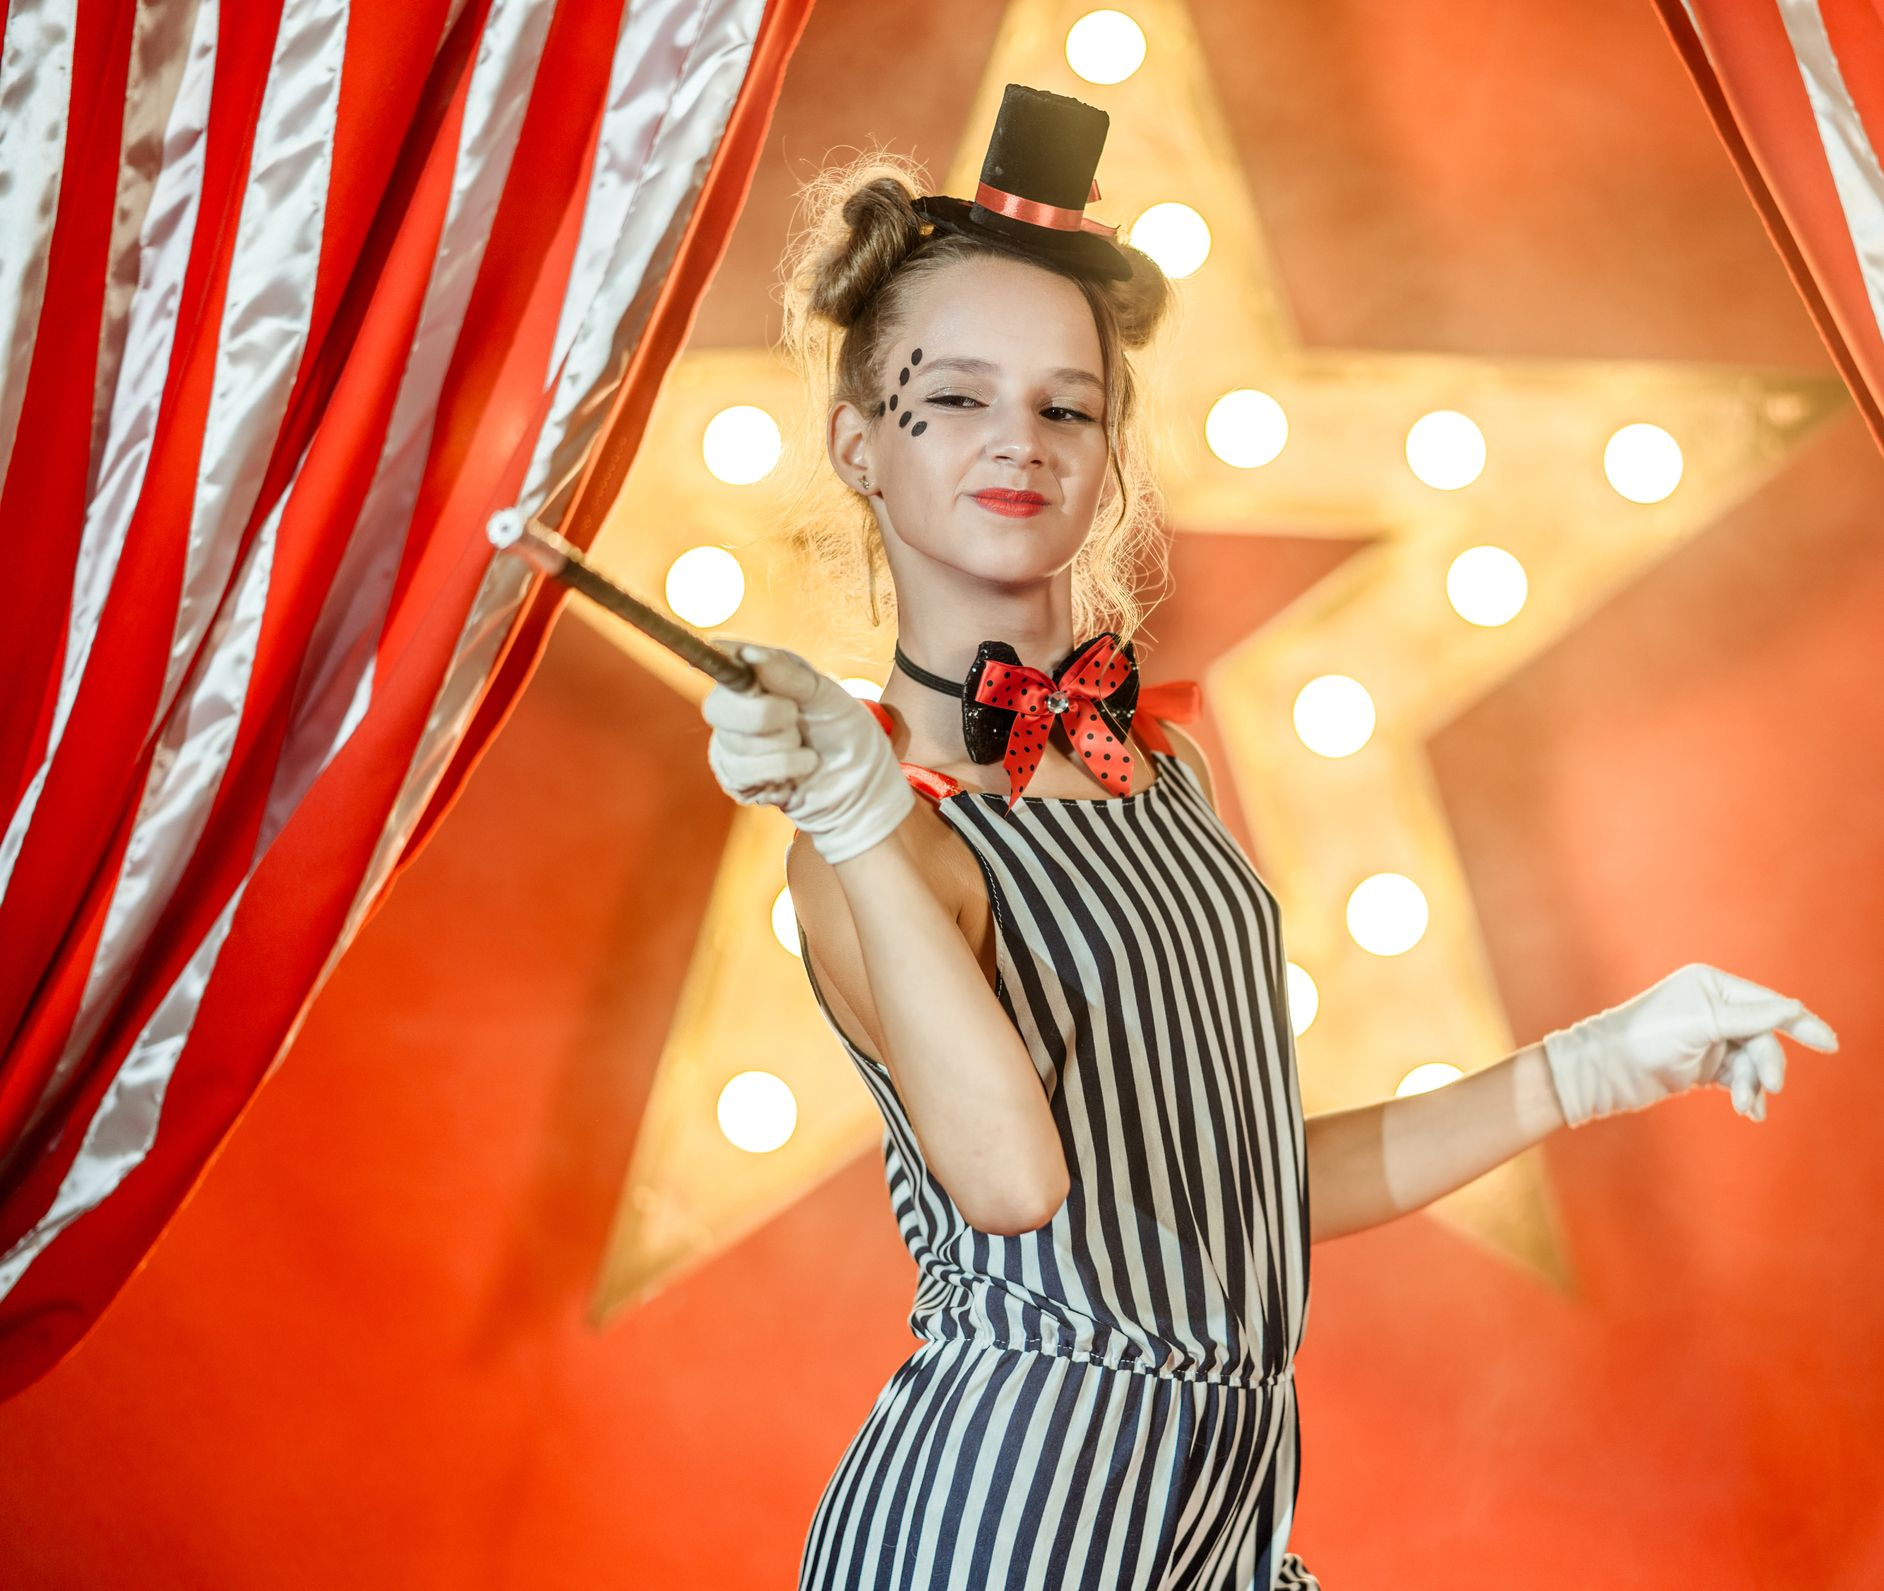 15 DIY Circus Costume Ideas for the Most Spectacular Halloween on Earth